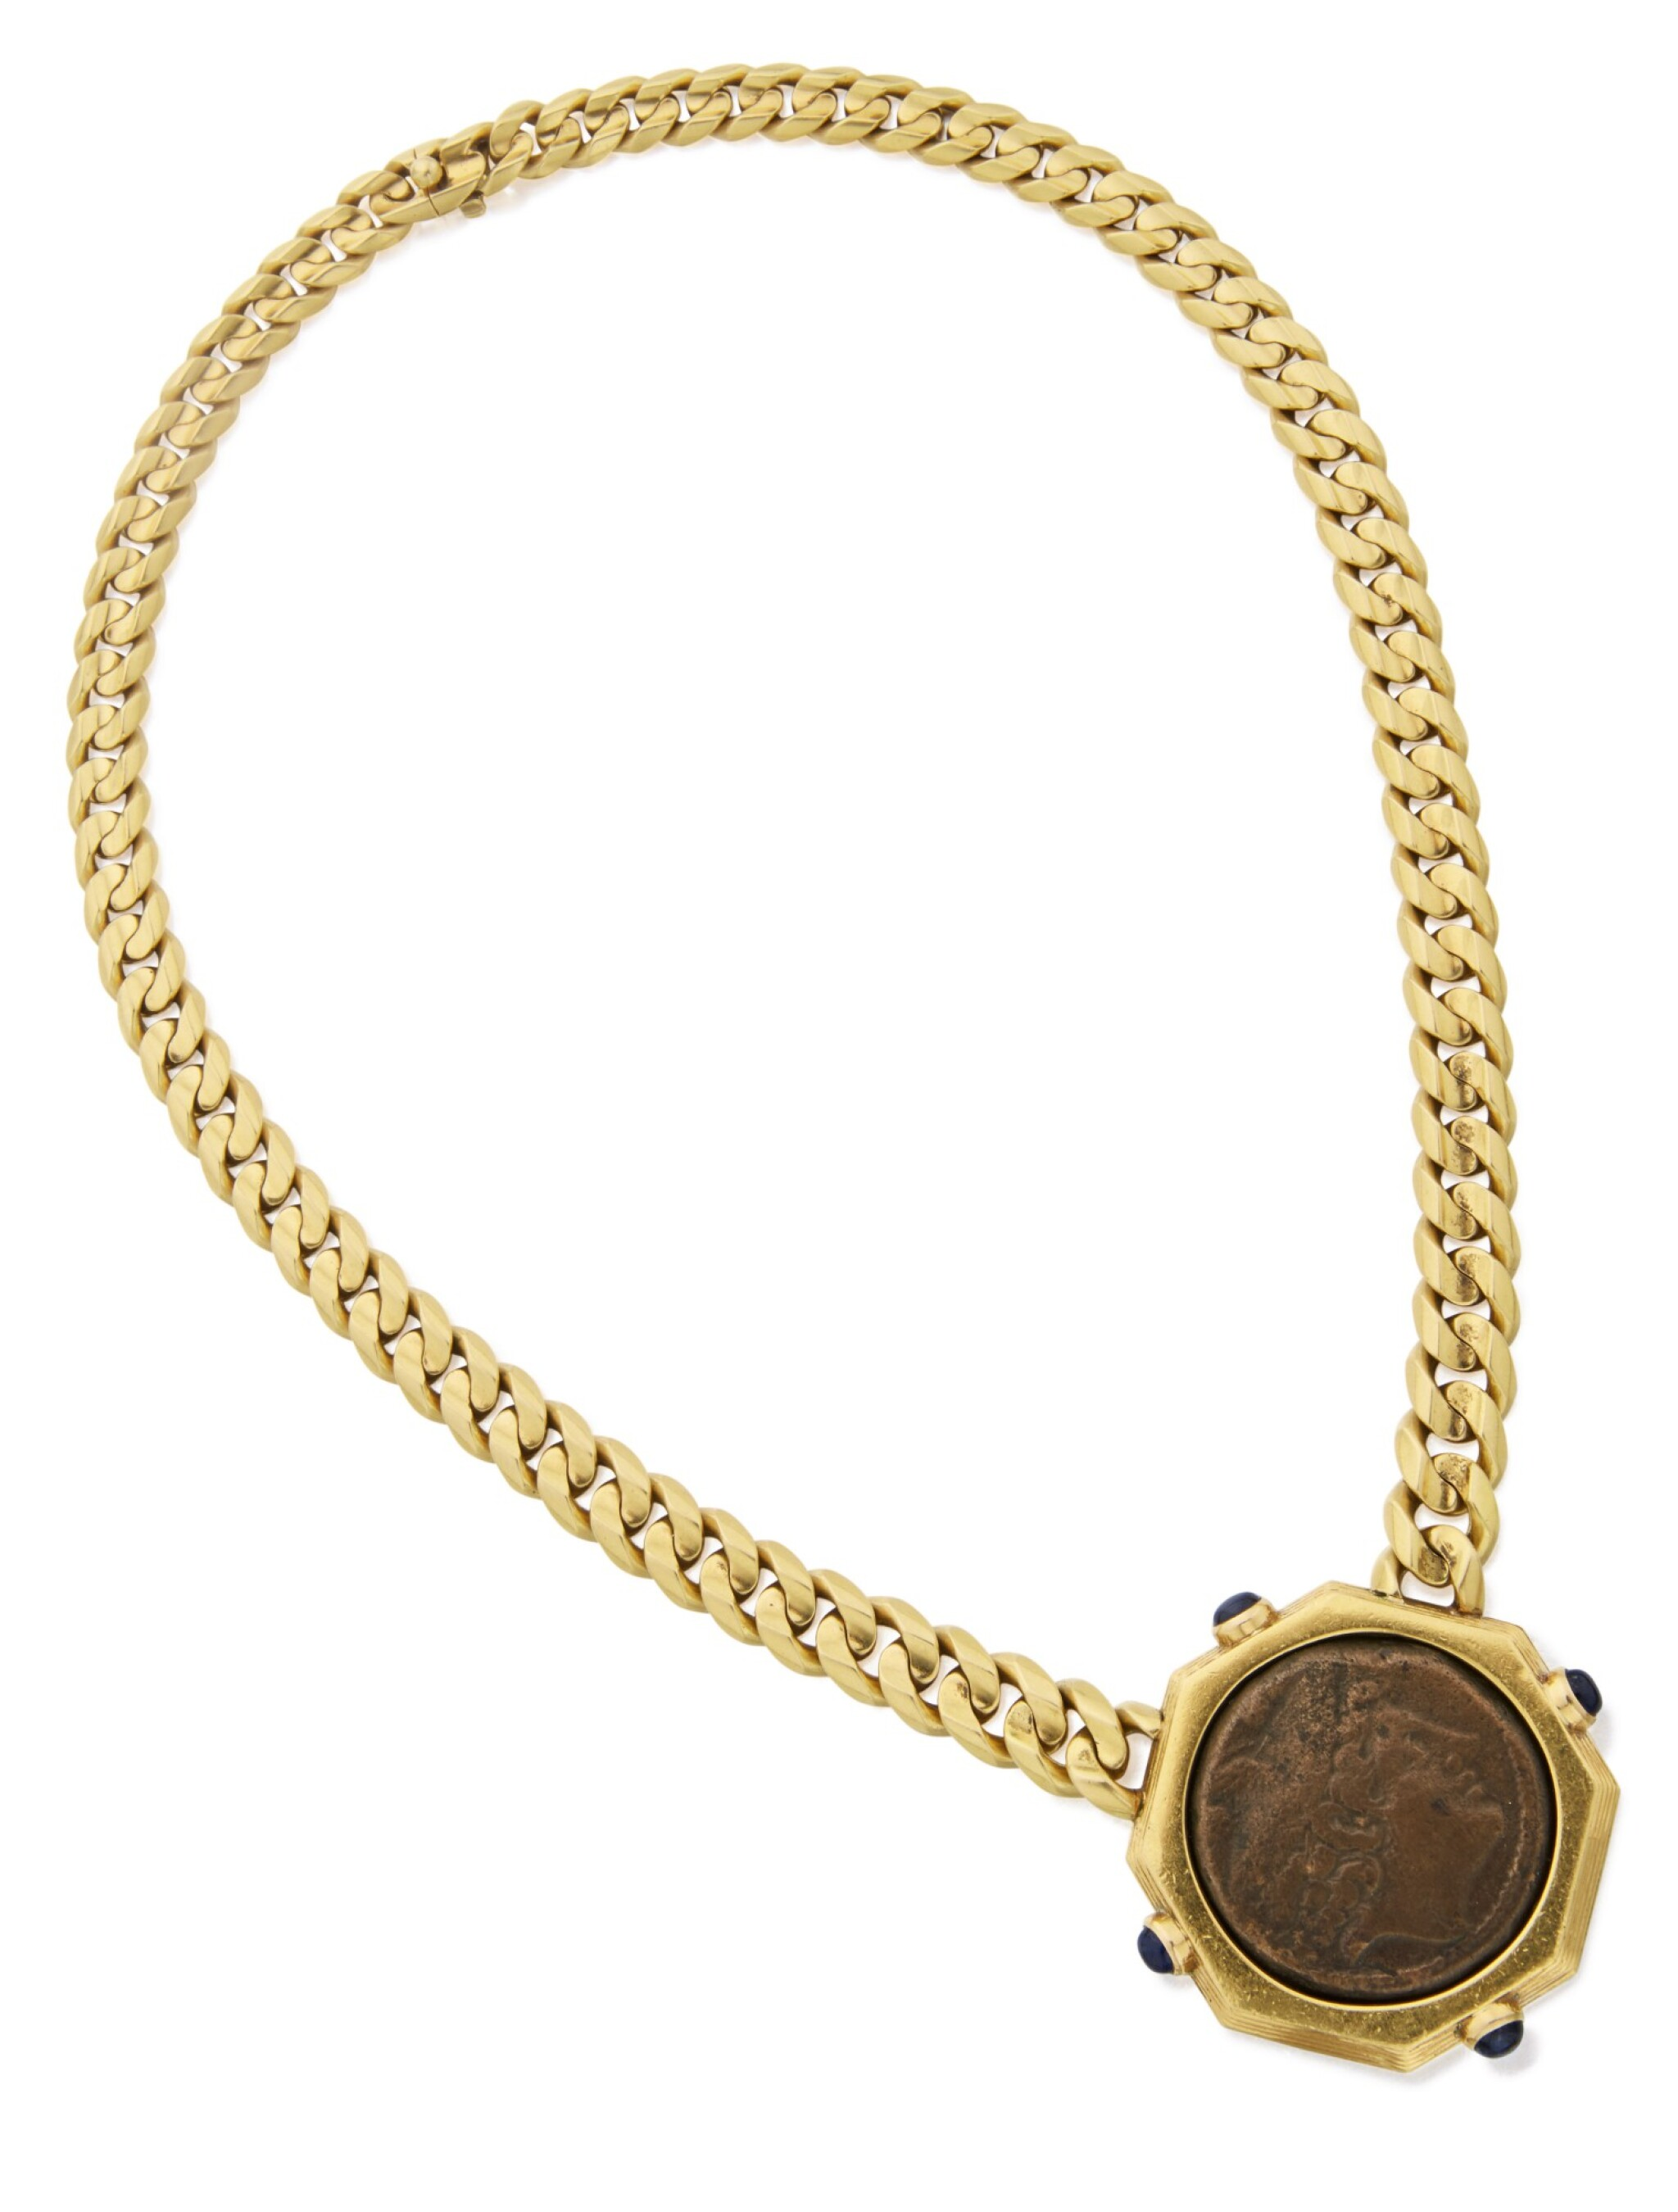 View 1 of Lot 426. GOLD, ANTIQUE COIN AND SAPPHIRE 'MONETE' NECKLACE, BULGARI.